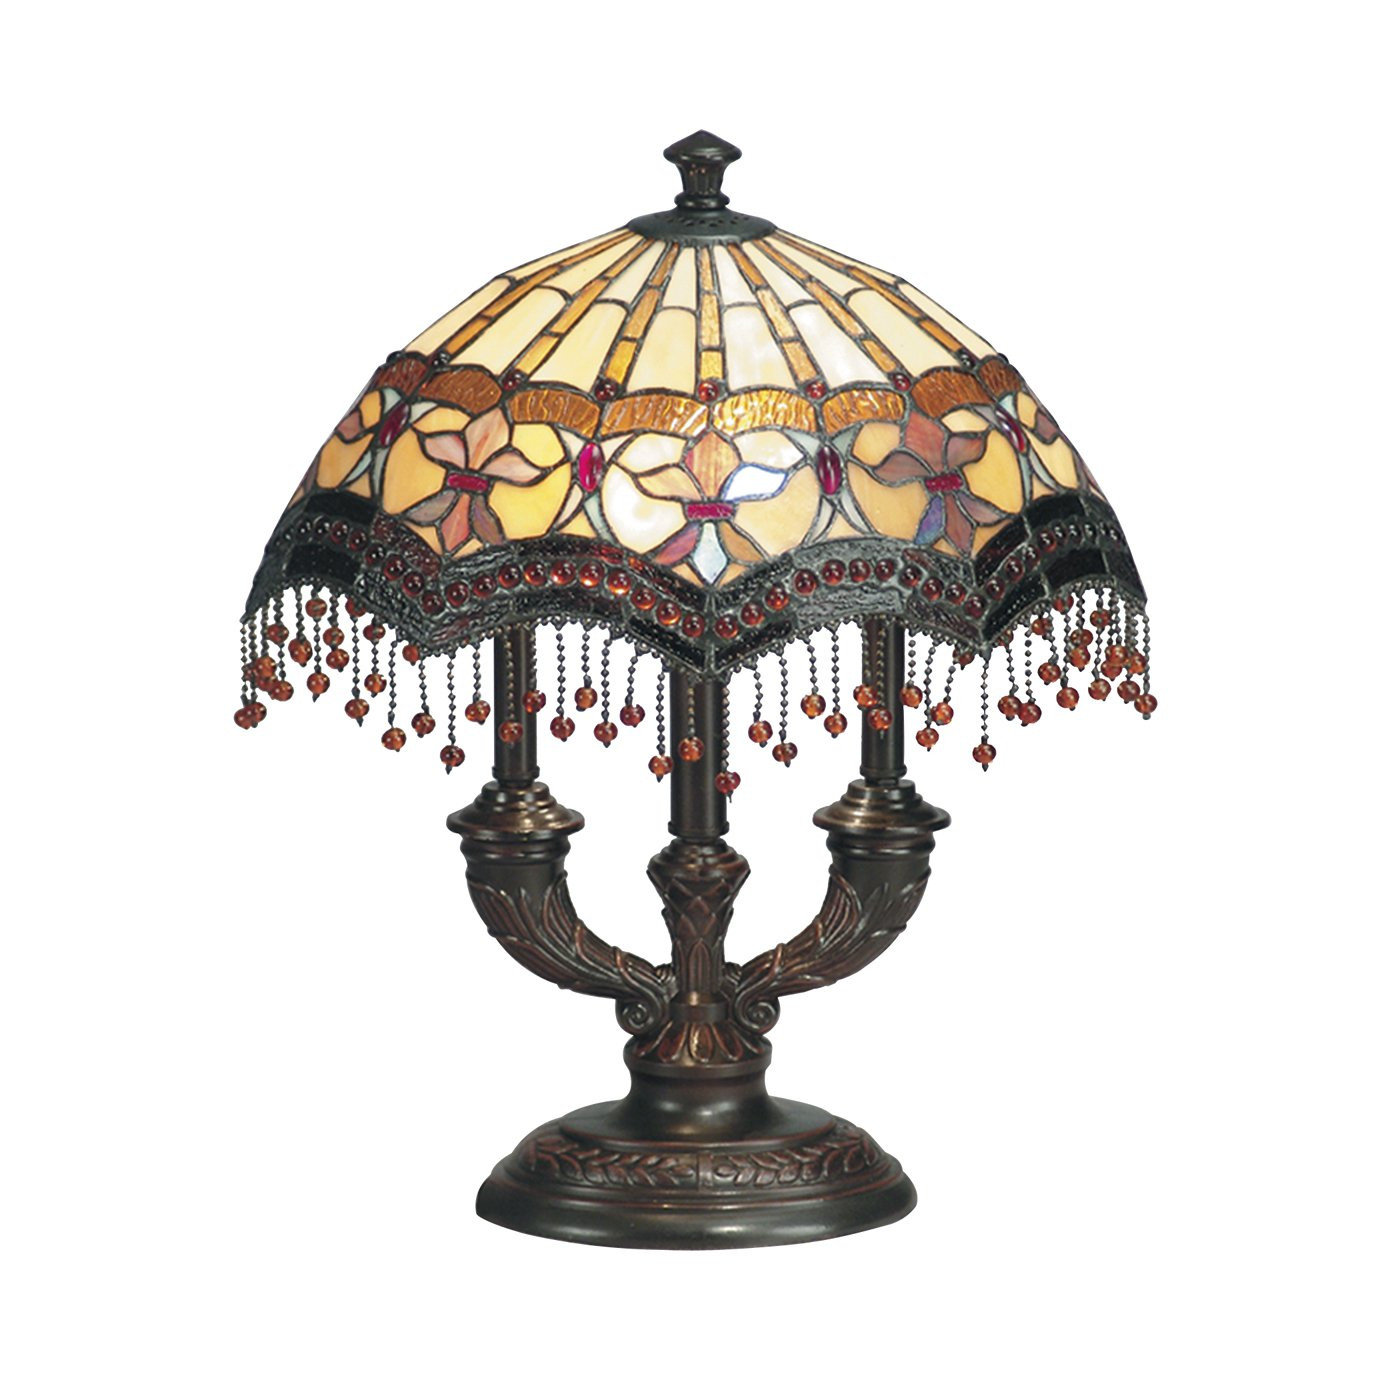 Antique Tiffany Lamps Beautiful Dale Tiffany 2 Light Marquette Table Lamp Antique Bronze Of Amazing 47 Photos Antique Tiffany Lamps